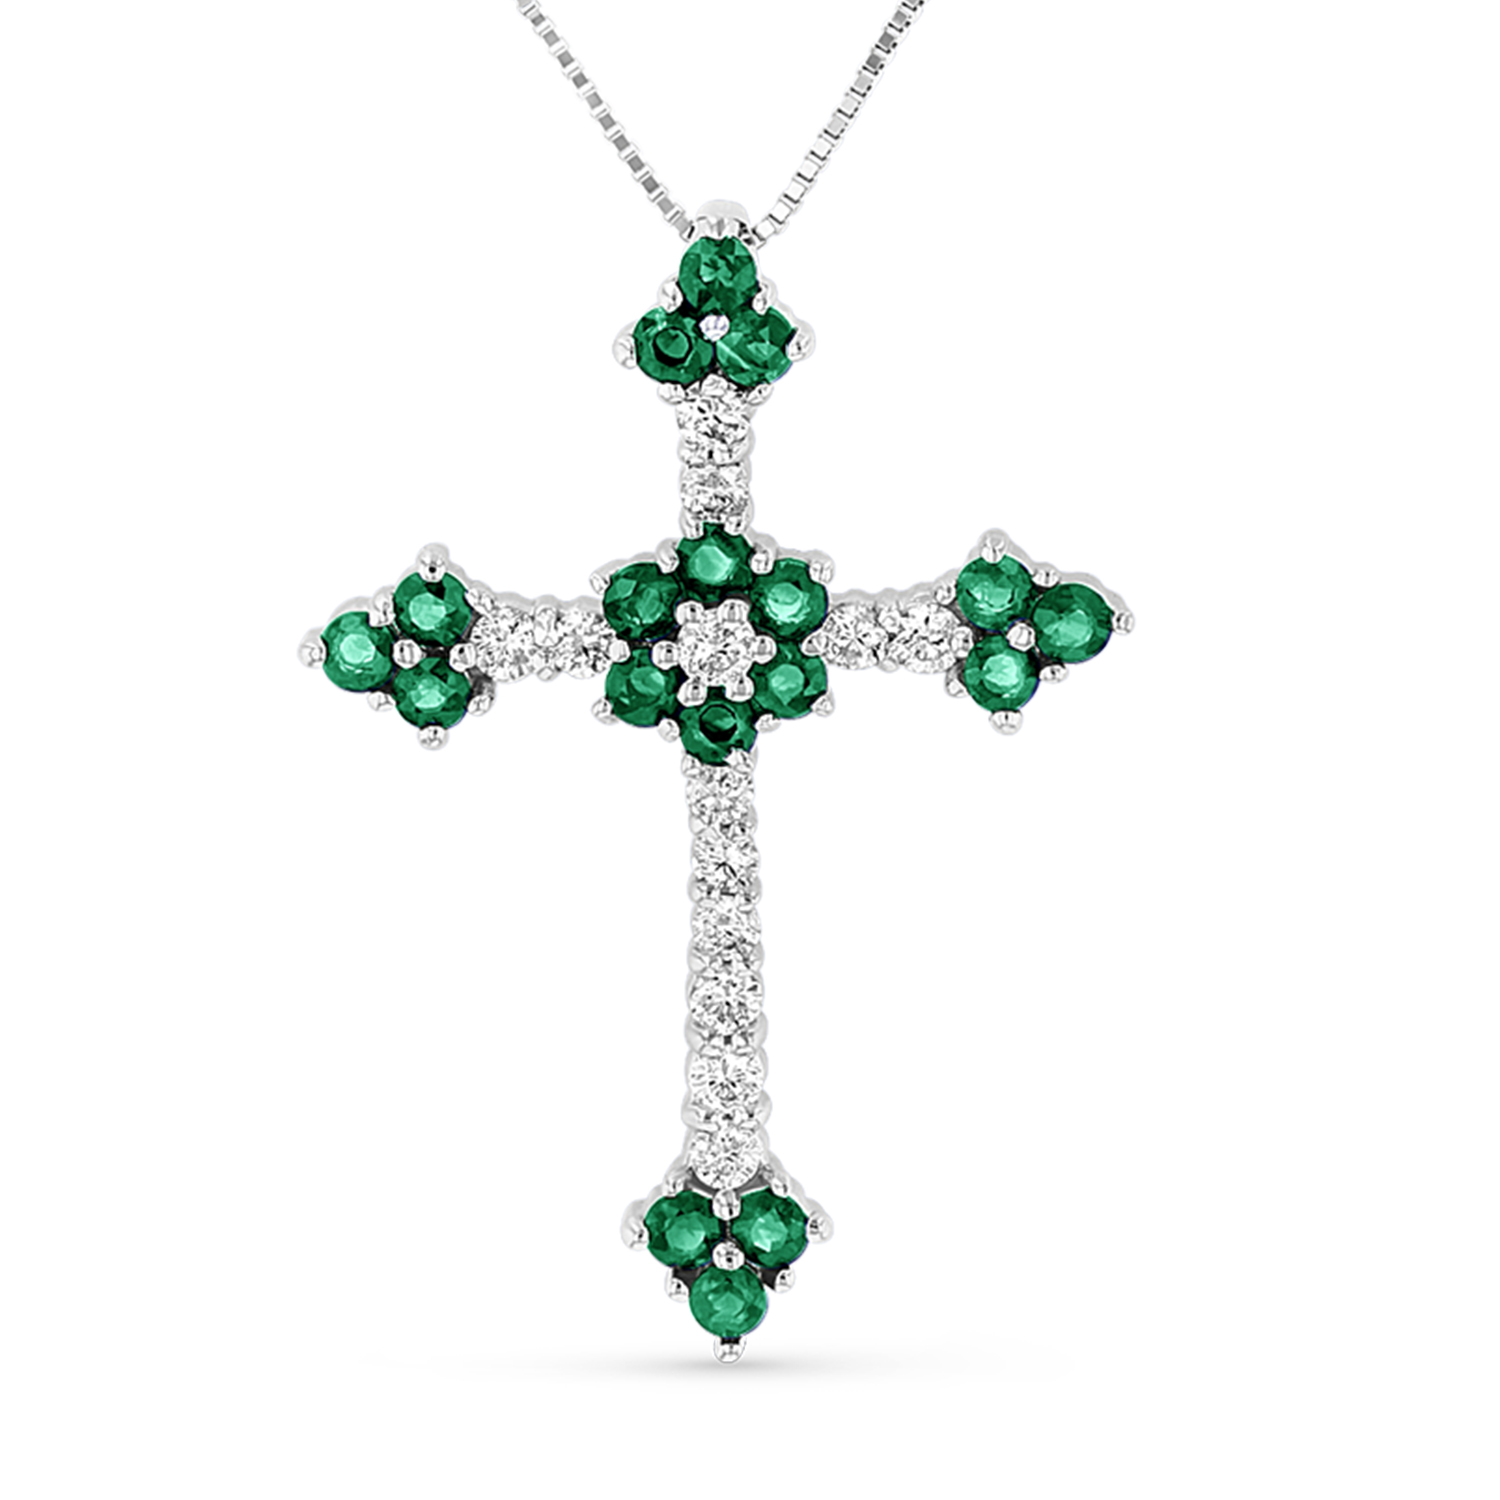 View 1.10ctw Diamond and Emerald Cross Pendantt in 14k White gold